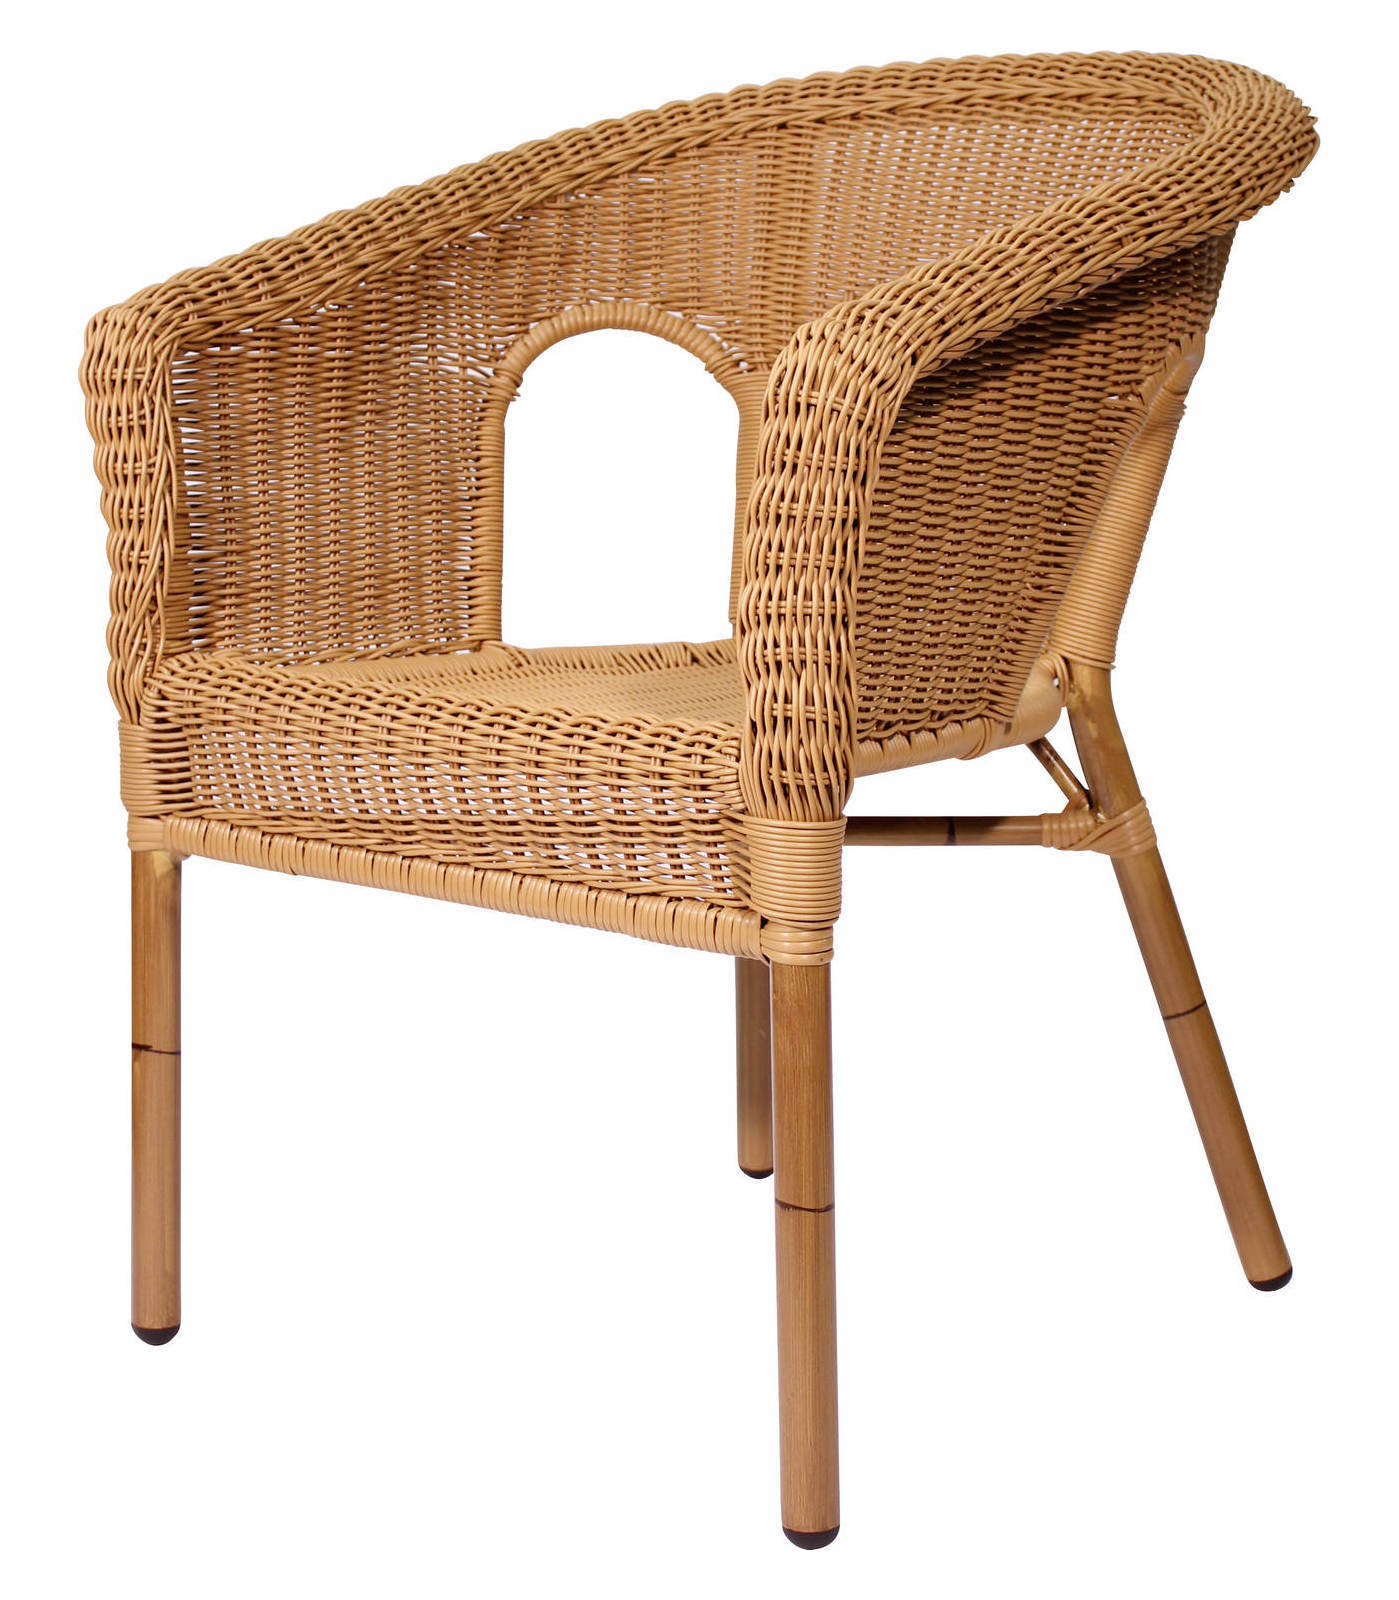 Bamboo Furniture 5 Seater Round Dining And Cane Furniture